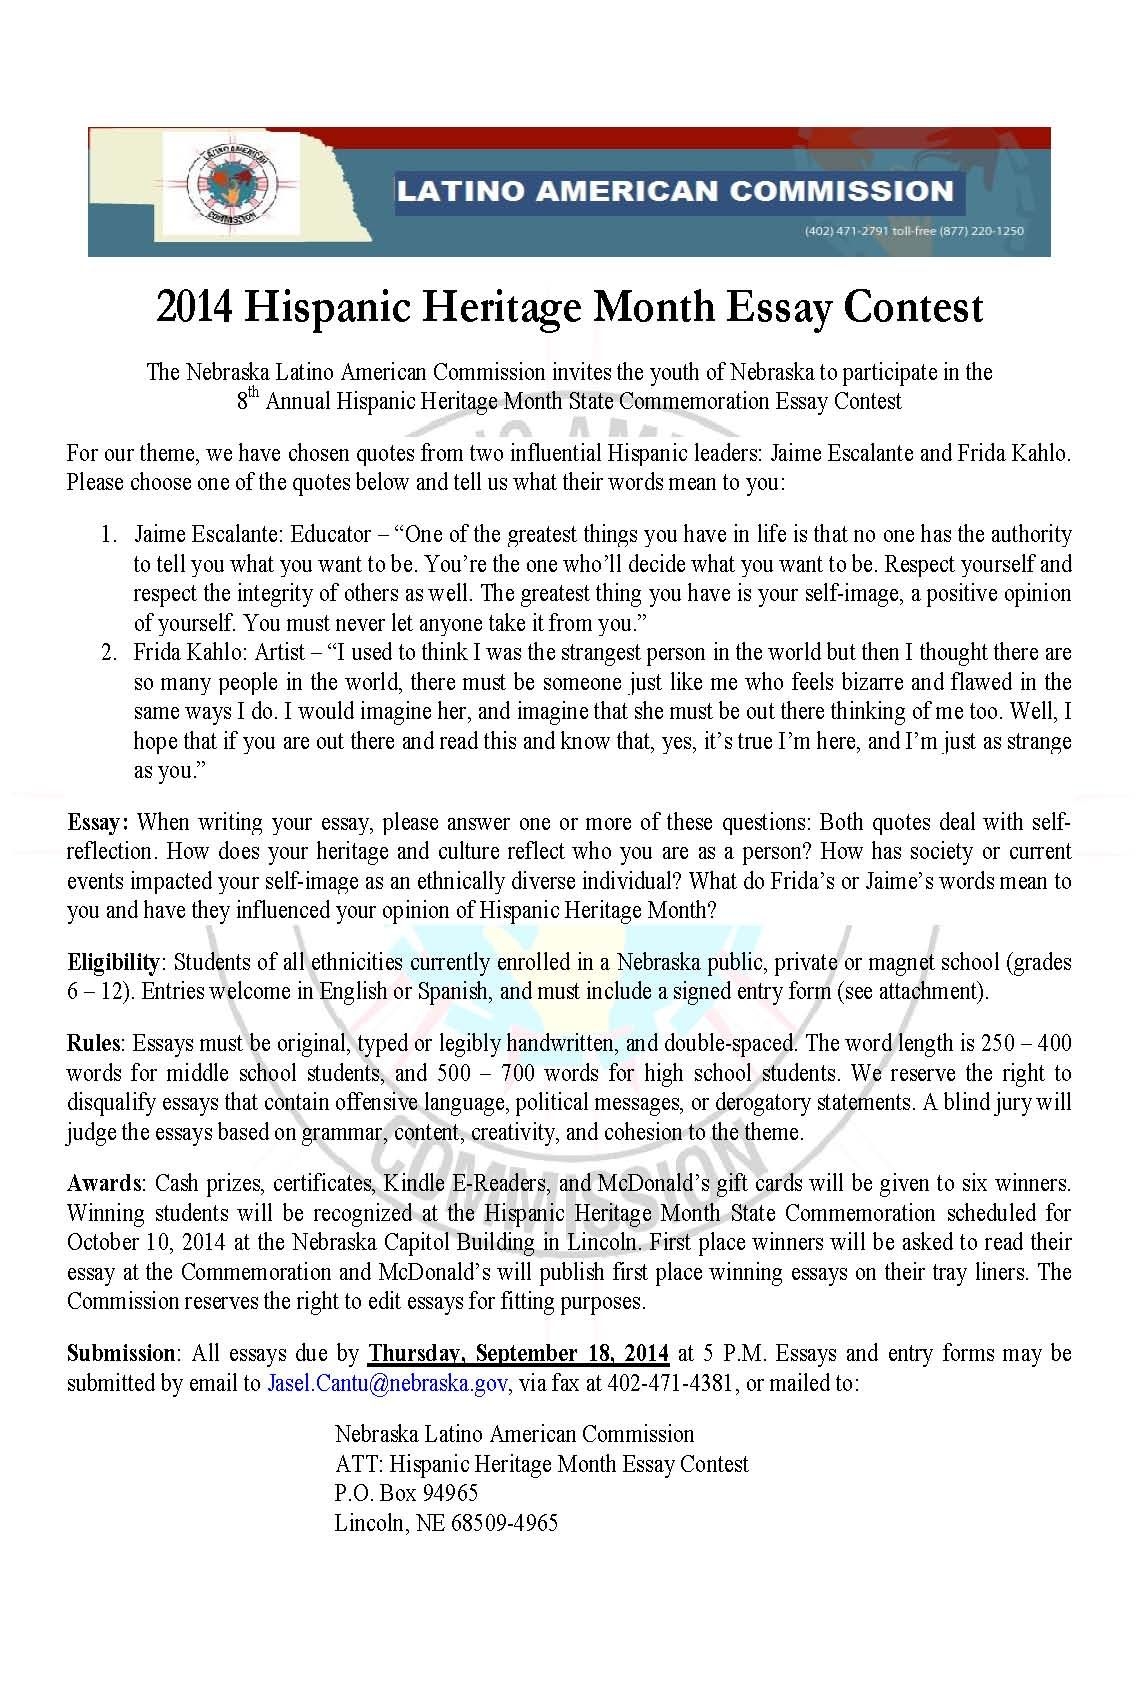 015 Essay Example Culture Shock Fearsome Prompt Story Titles Full